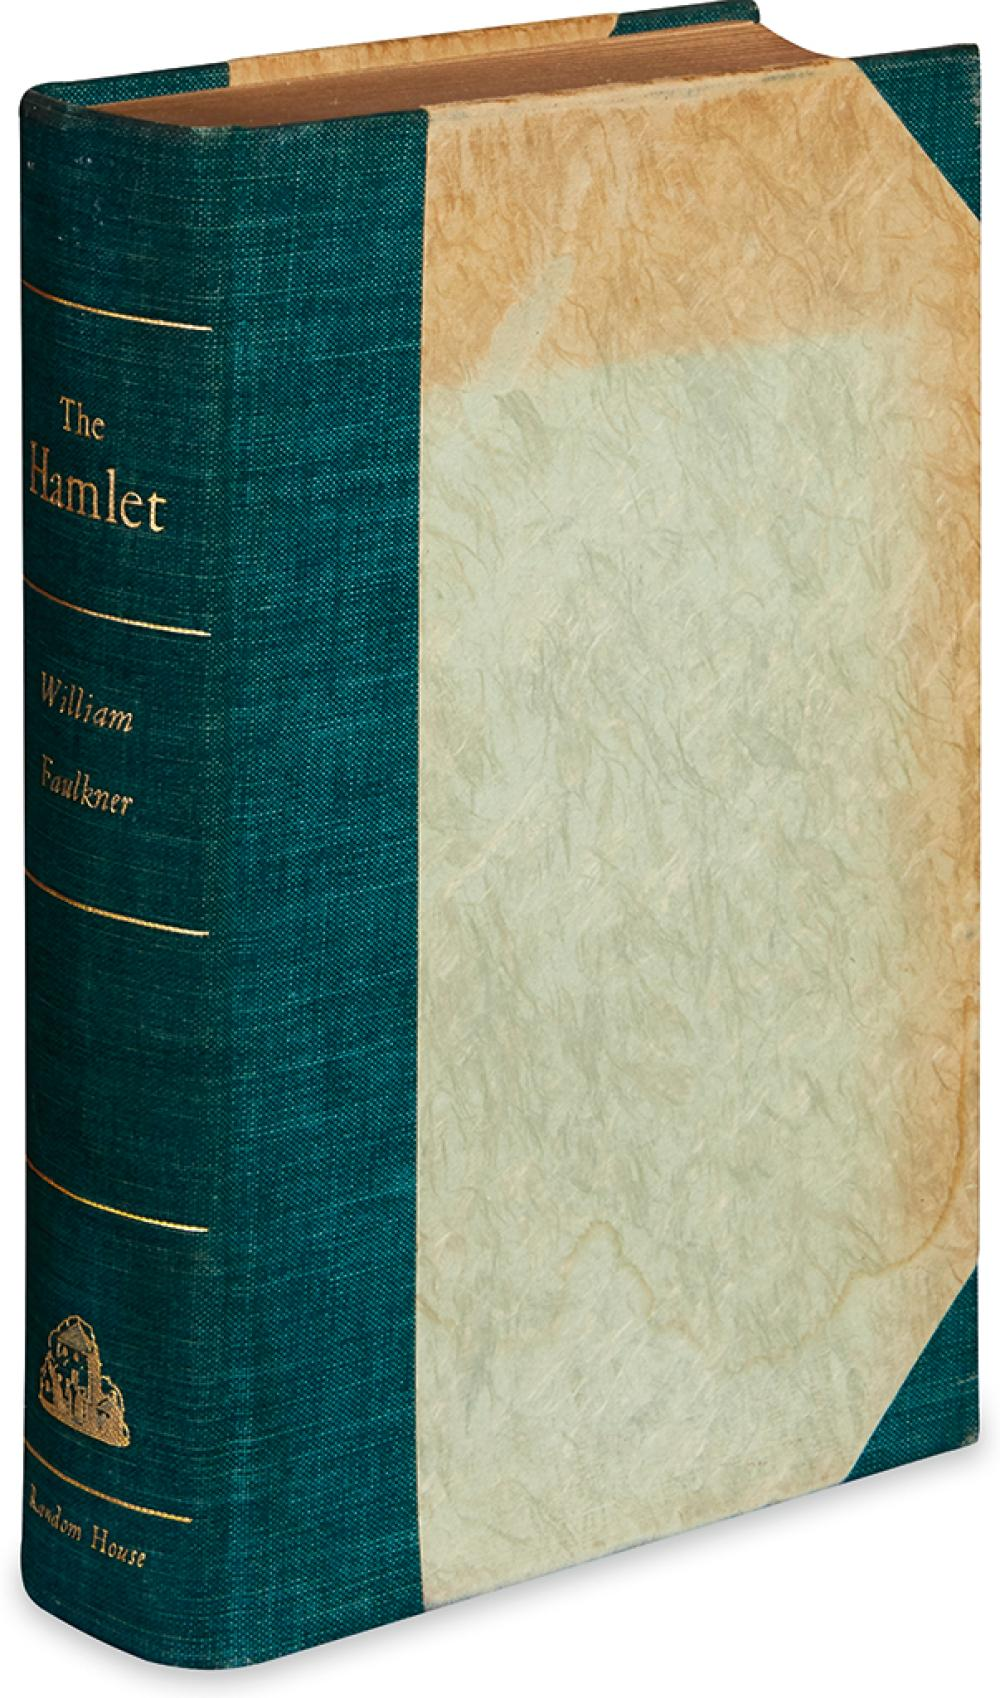 FAULKNER, WILLIAM. Hamlet.